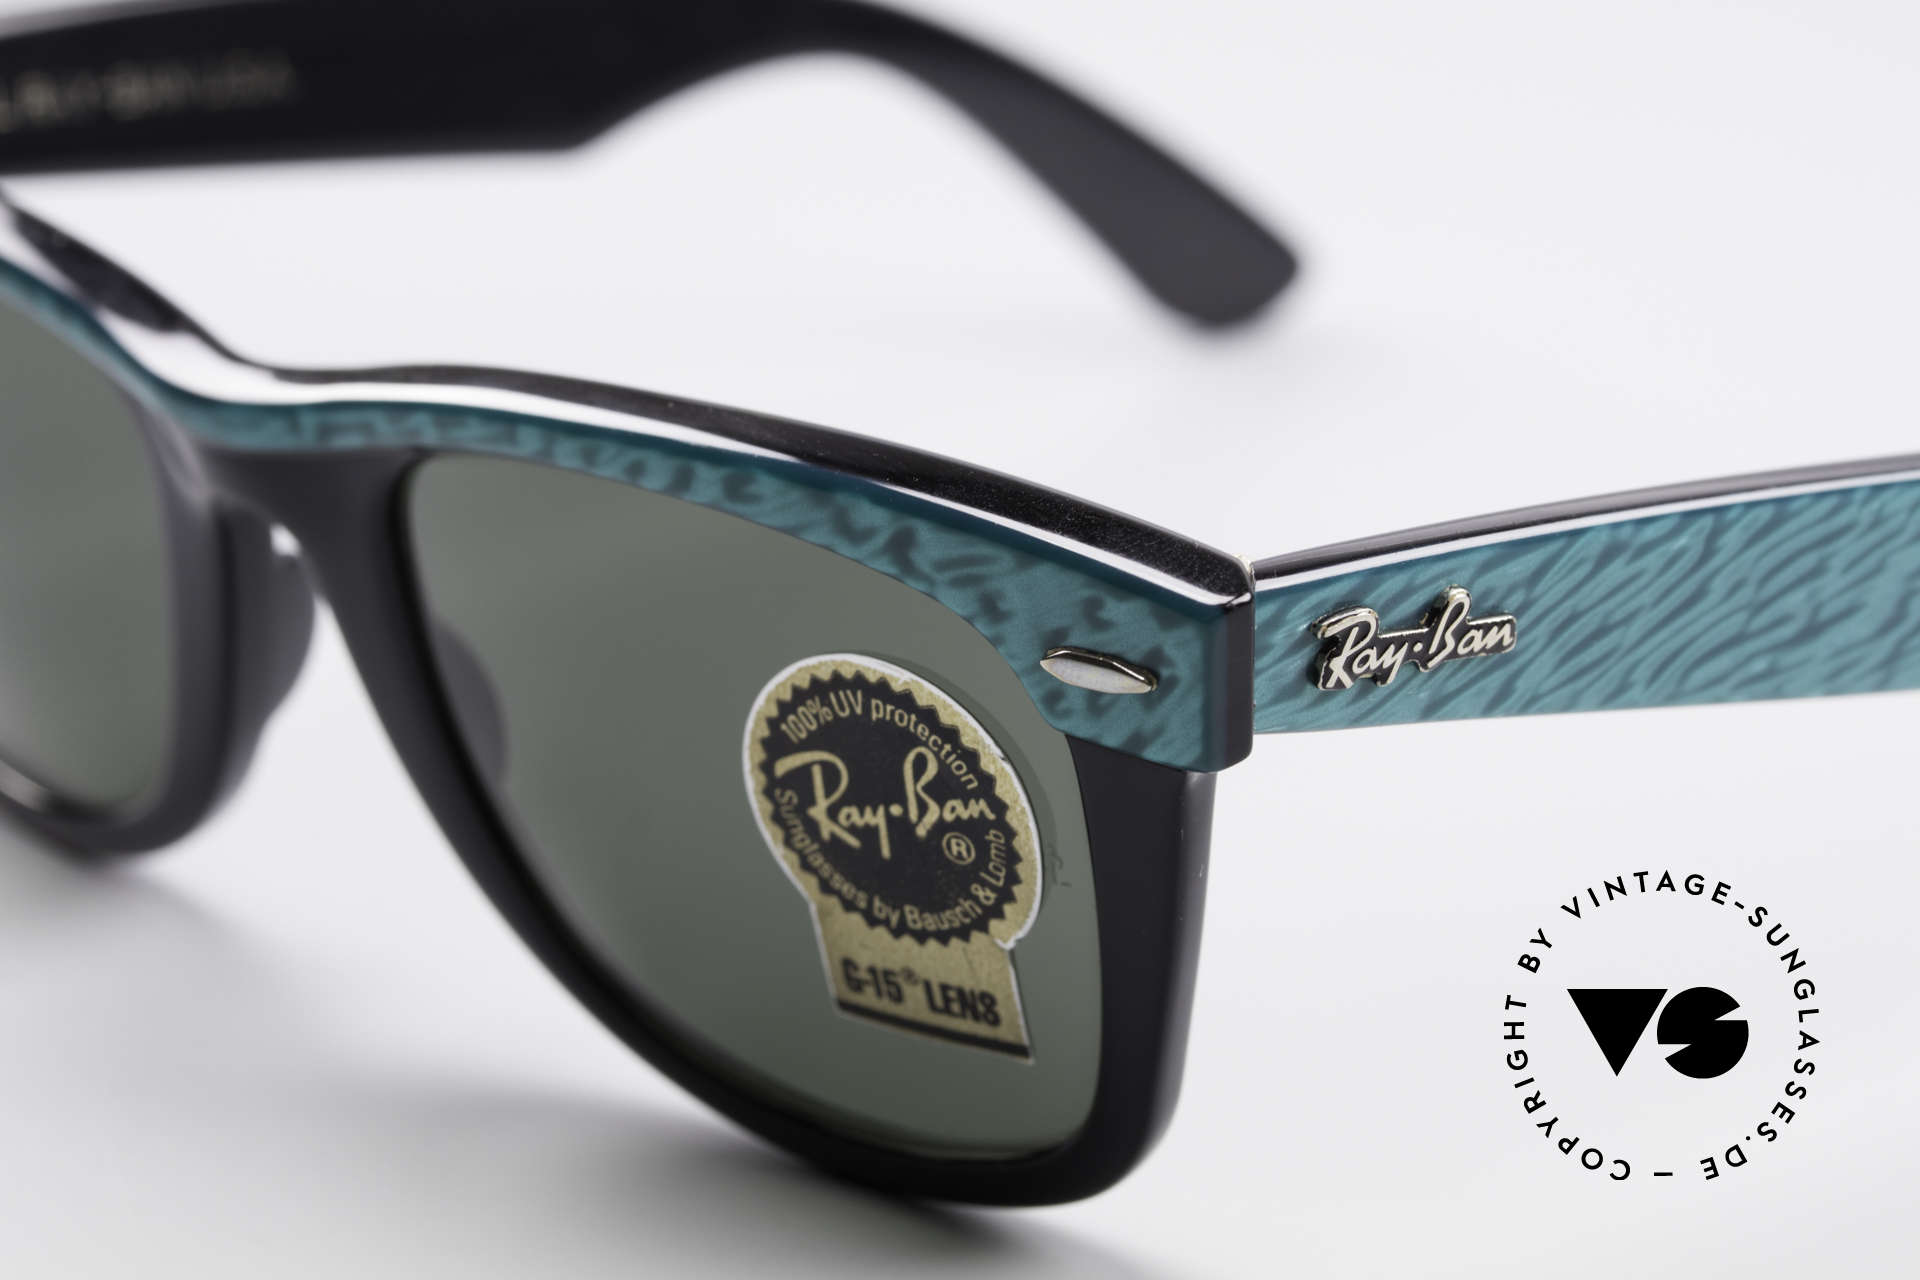 Ray Ban Wayfarer I Old 80's USA Sunglasses B&L, Bausch&Lomb mineral lenses (100% UV protection), Made for Men and Women